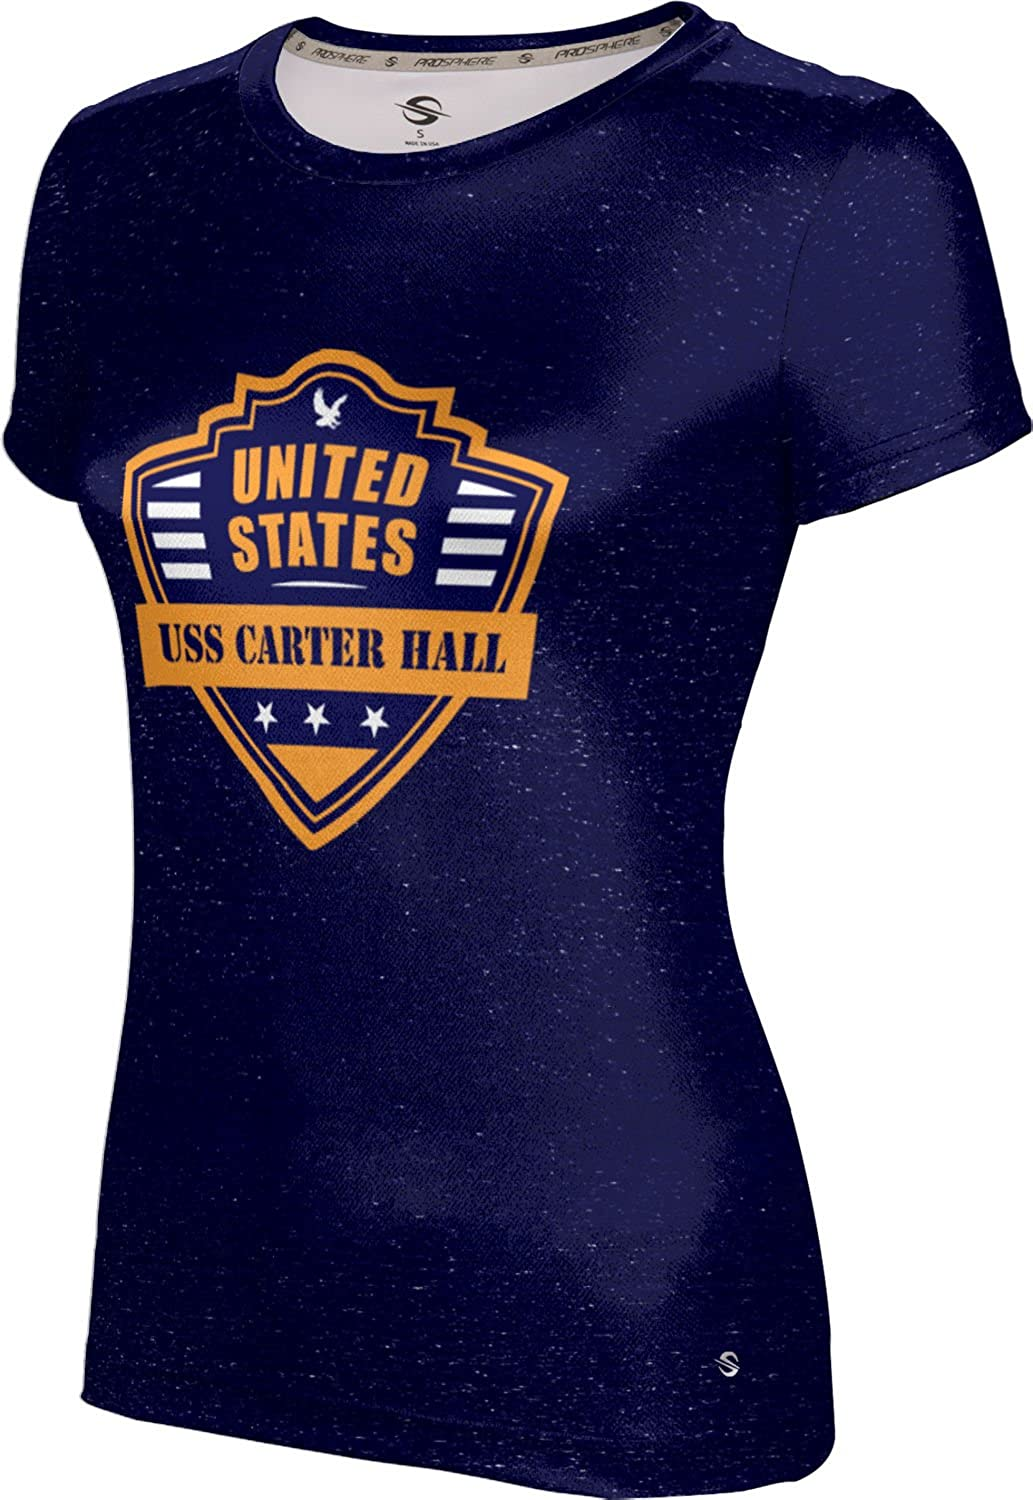 ProSphere Women's USS Carter Hall Military Heather Tech Tee